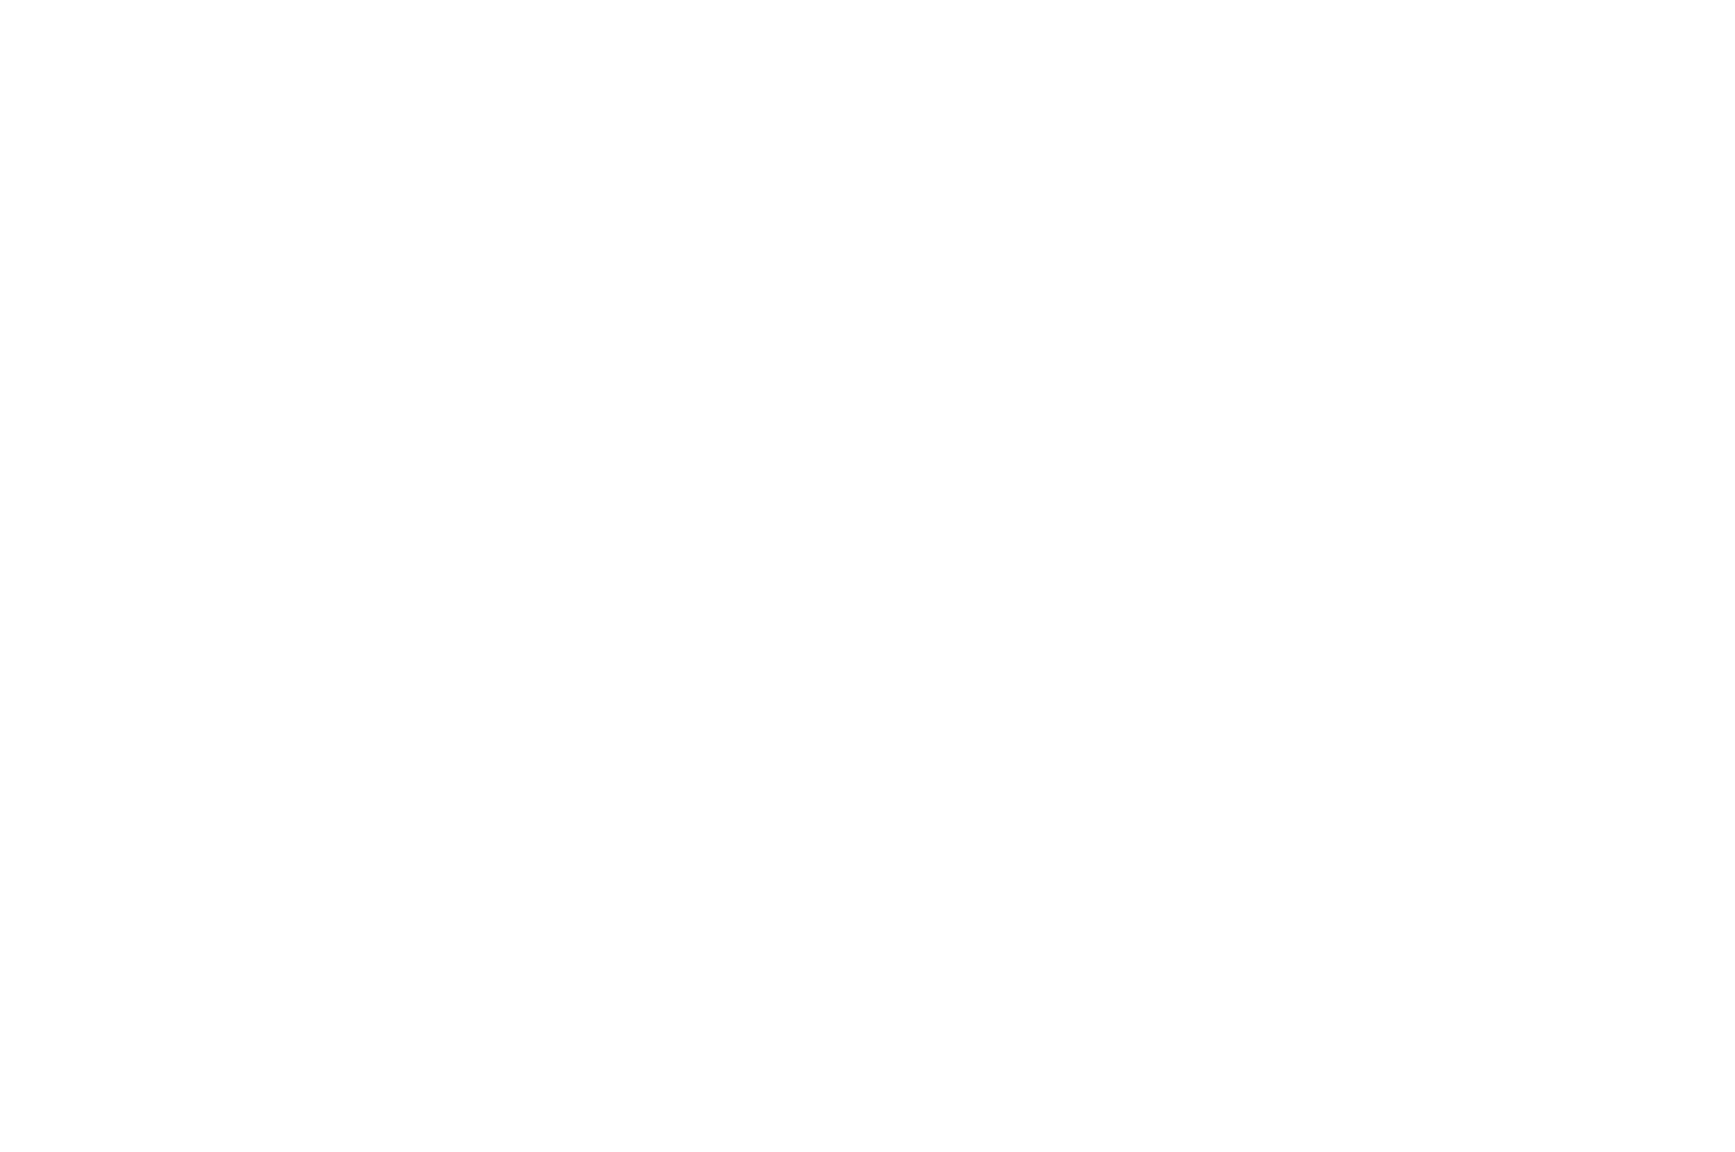 OFFICIAL SELECTION - The World Festival